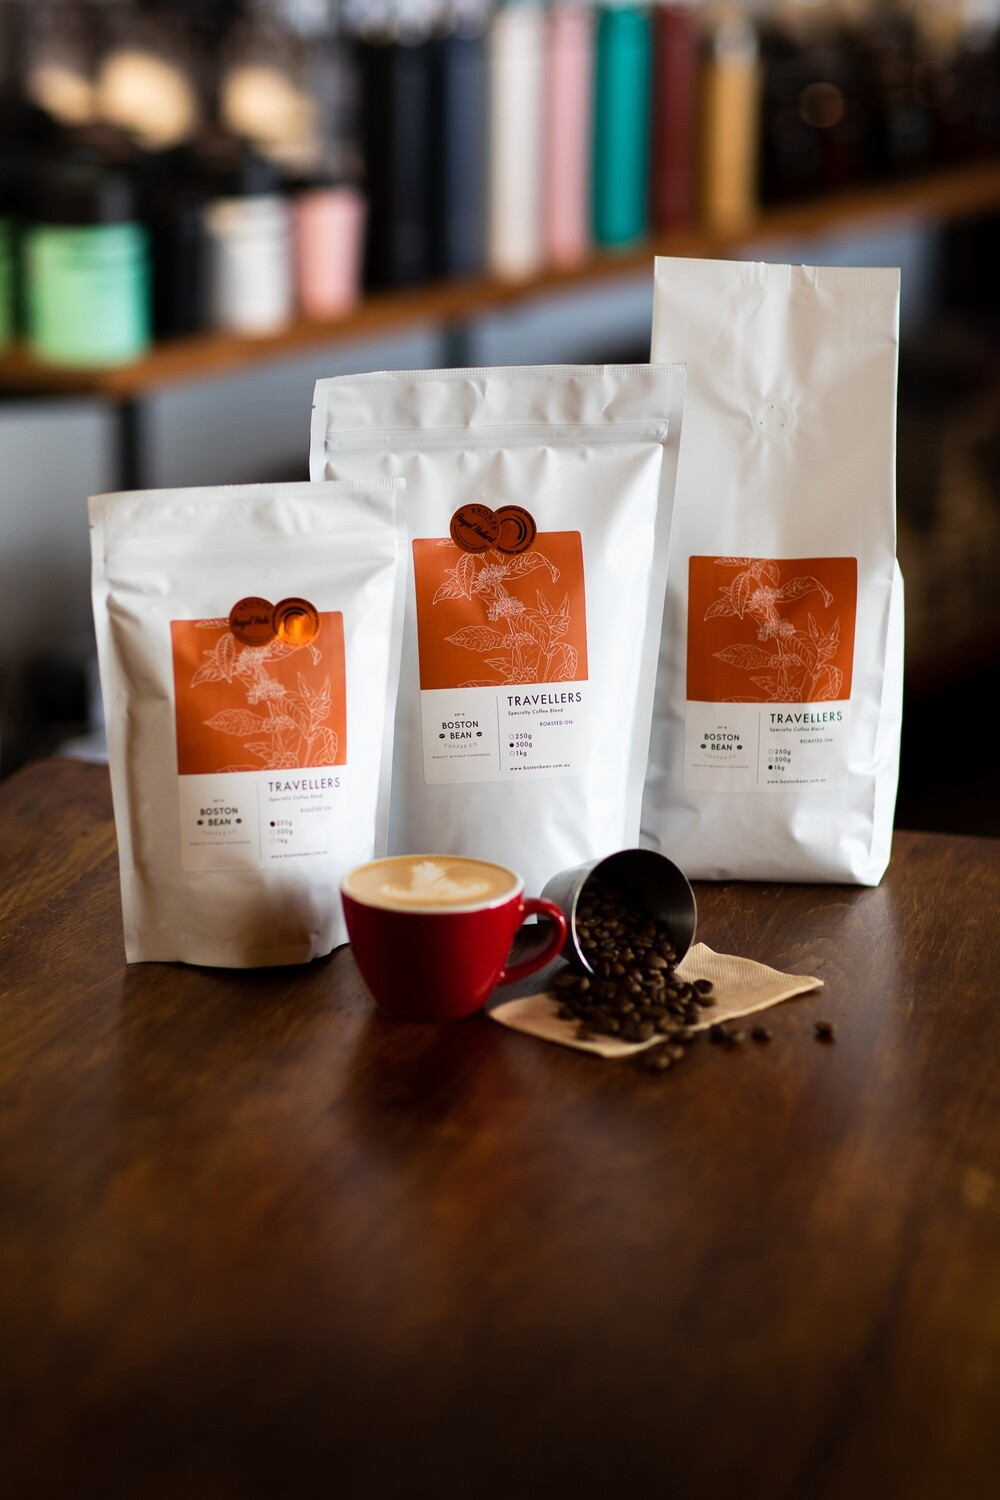 Travellers Specialty Coffee Blend